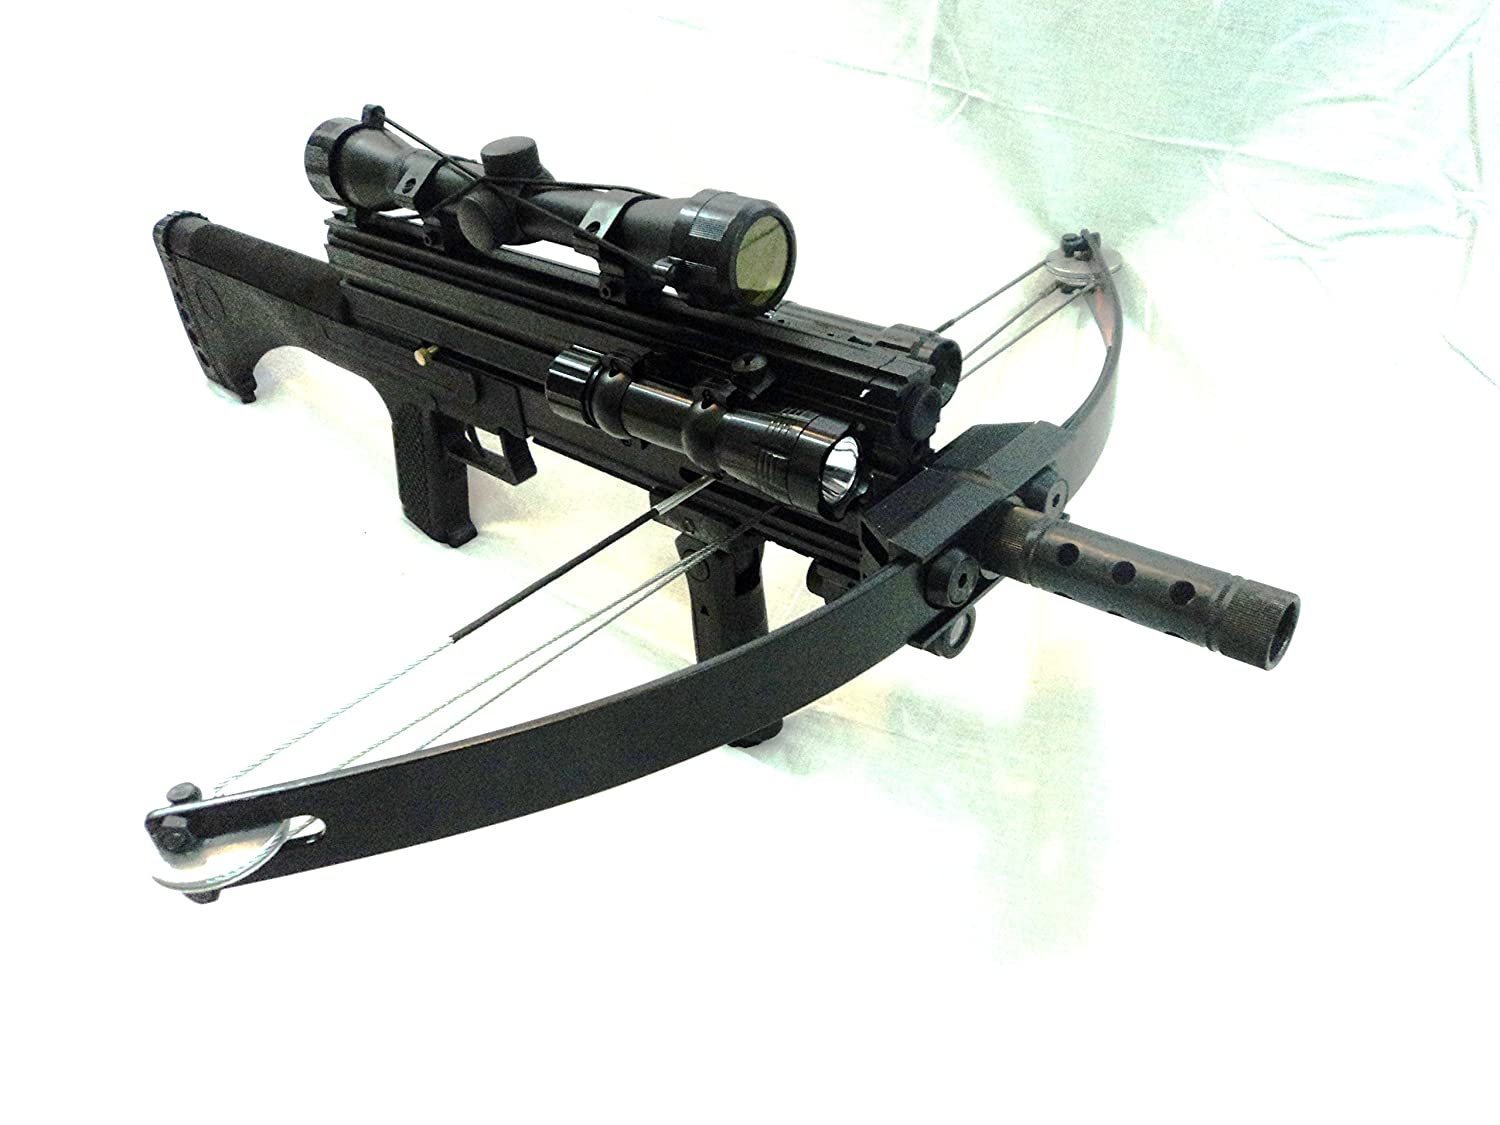 WILLIAM TELL ARCHERY WT4 Tactical Multifunctional Crossbow 200 Steel Ball Magazine